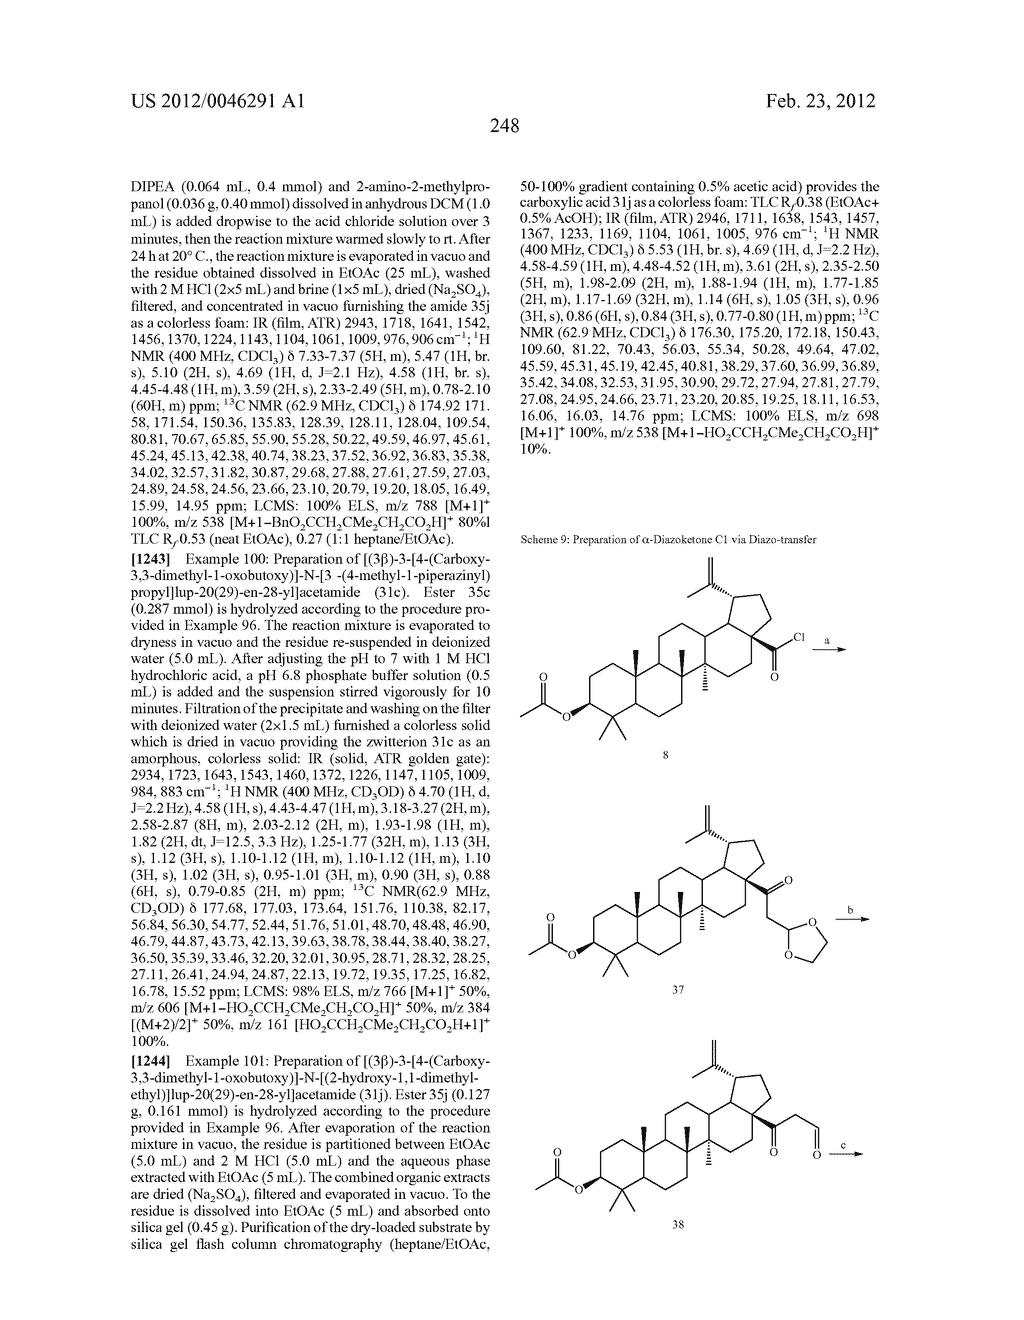 Extended Triterpene Derivatives - diagram, schematic, and image 248